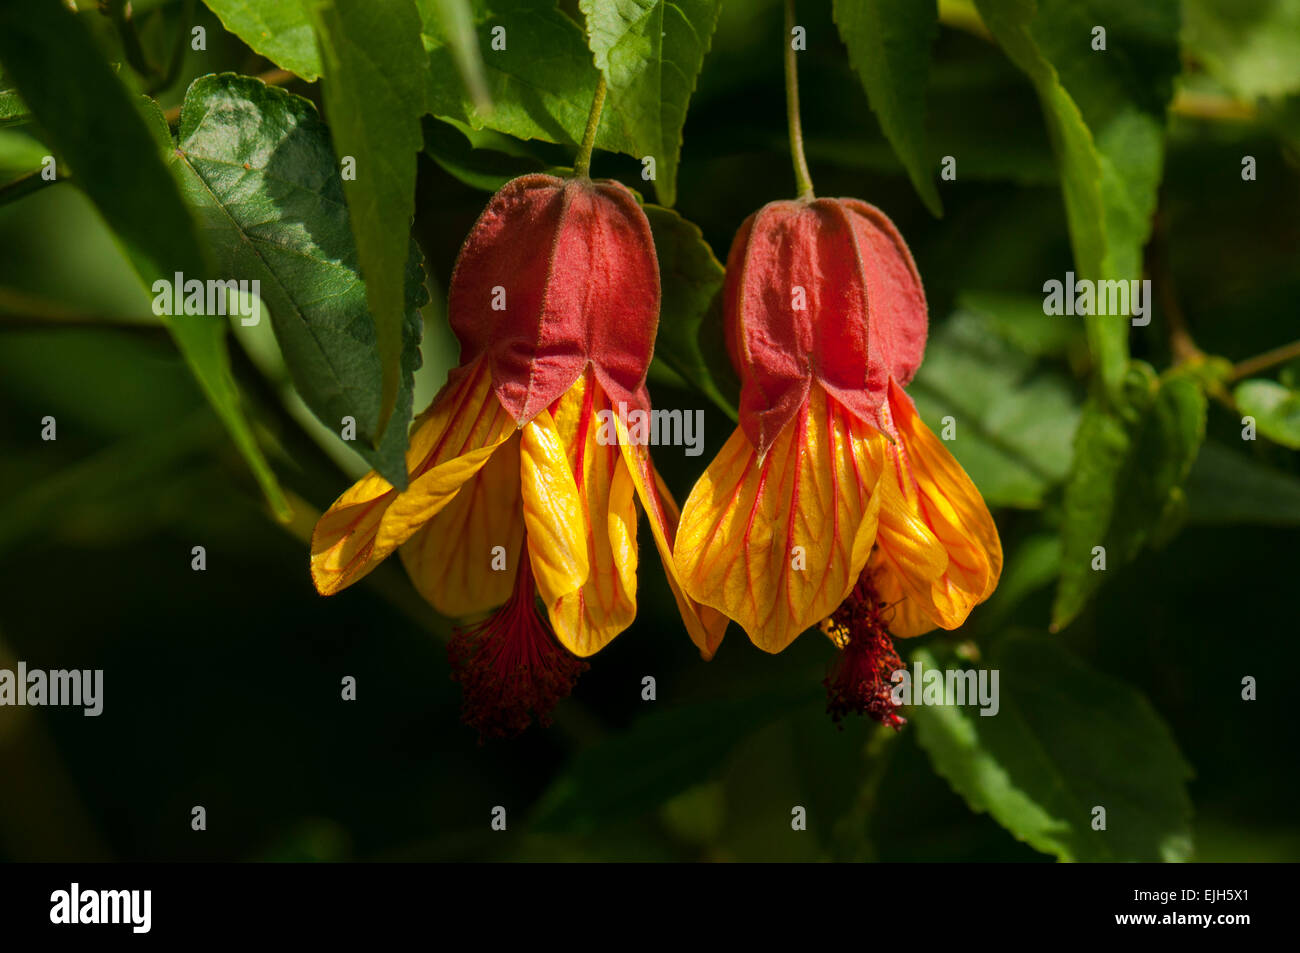 Abutilon megapotamicum, Chinese Lantern Sunset - Stock Image